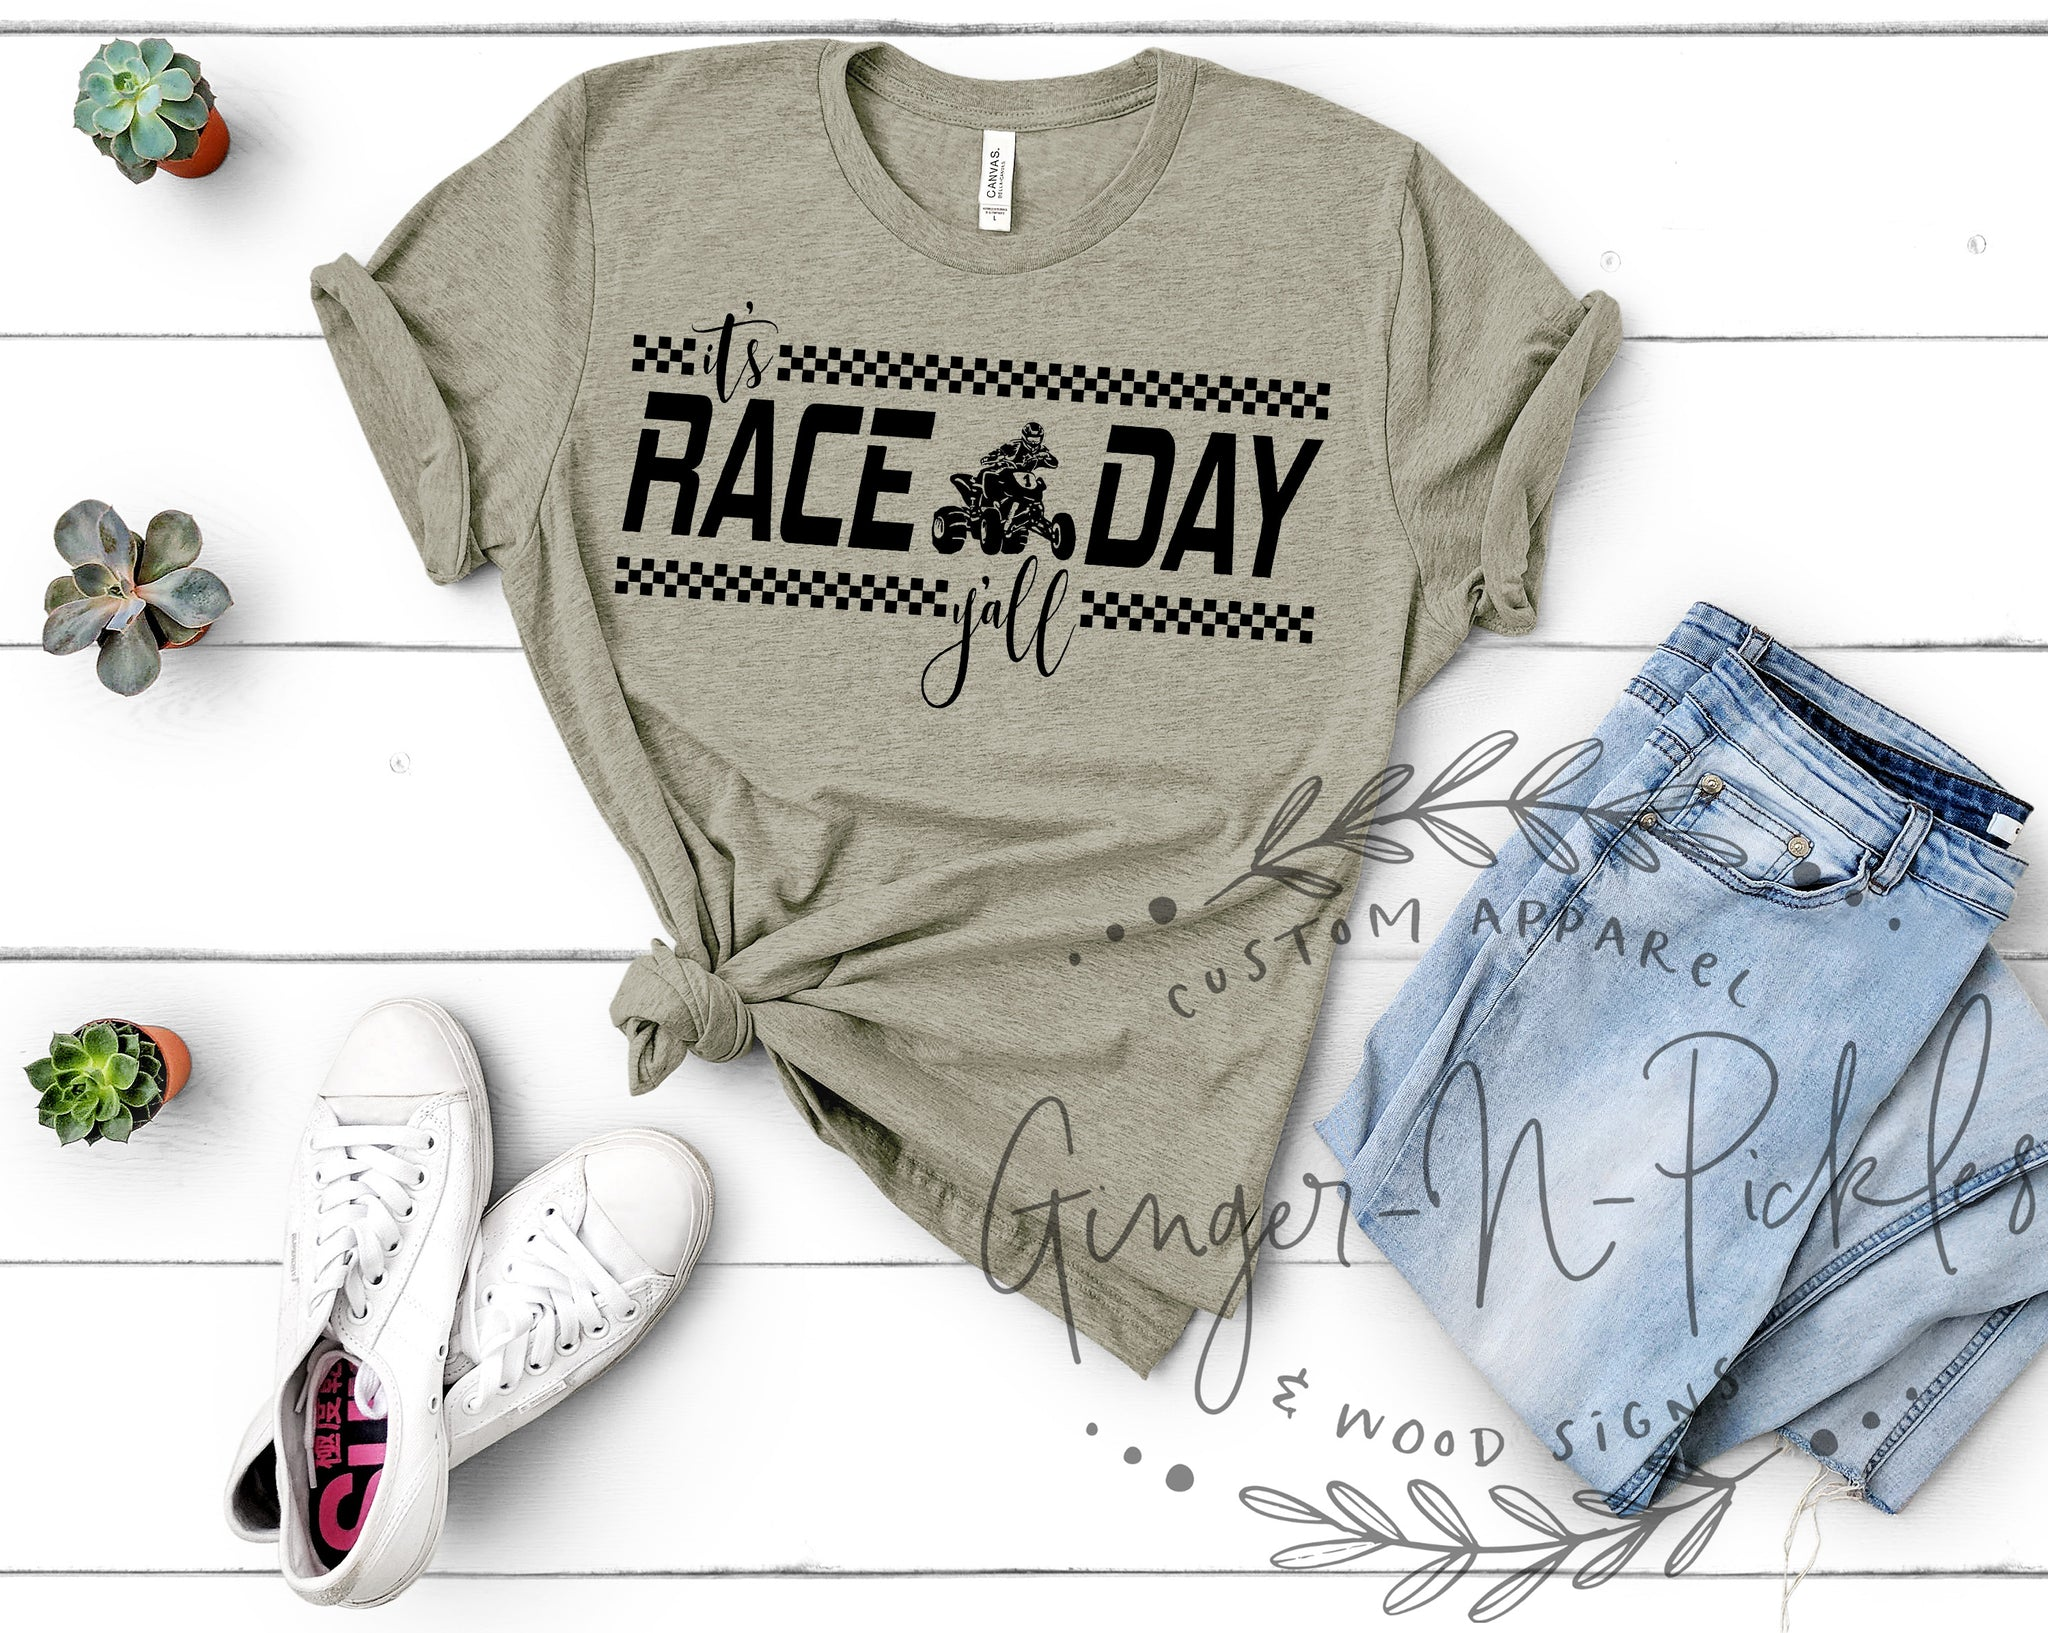 It's Race Day Y'All Quad Racer Short Sleeve or Long Sleeve Shirt, Quad Racing Shirt, Unisex Offroad Racing Shirt, Dirt Track Racing Shirt